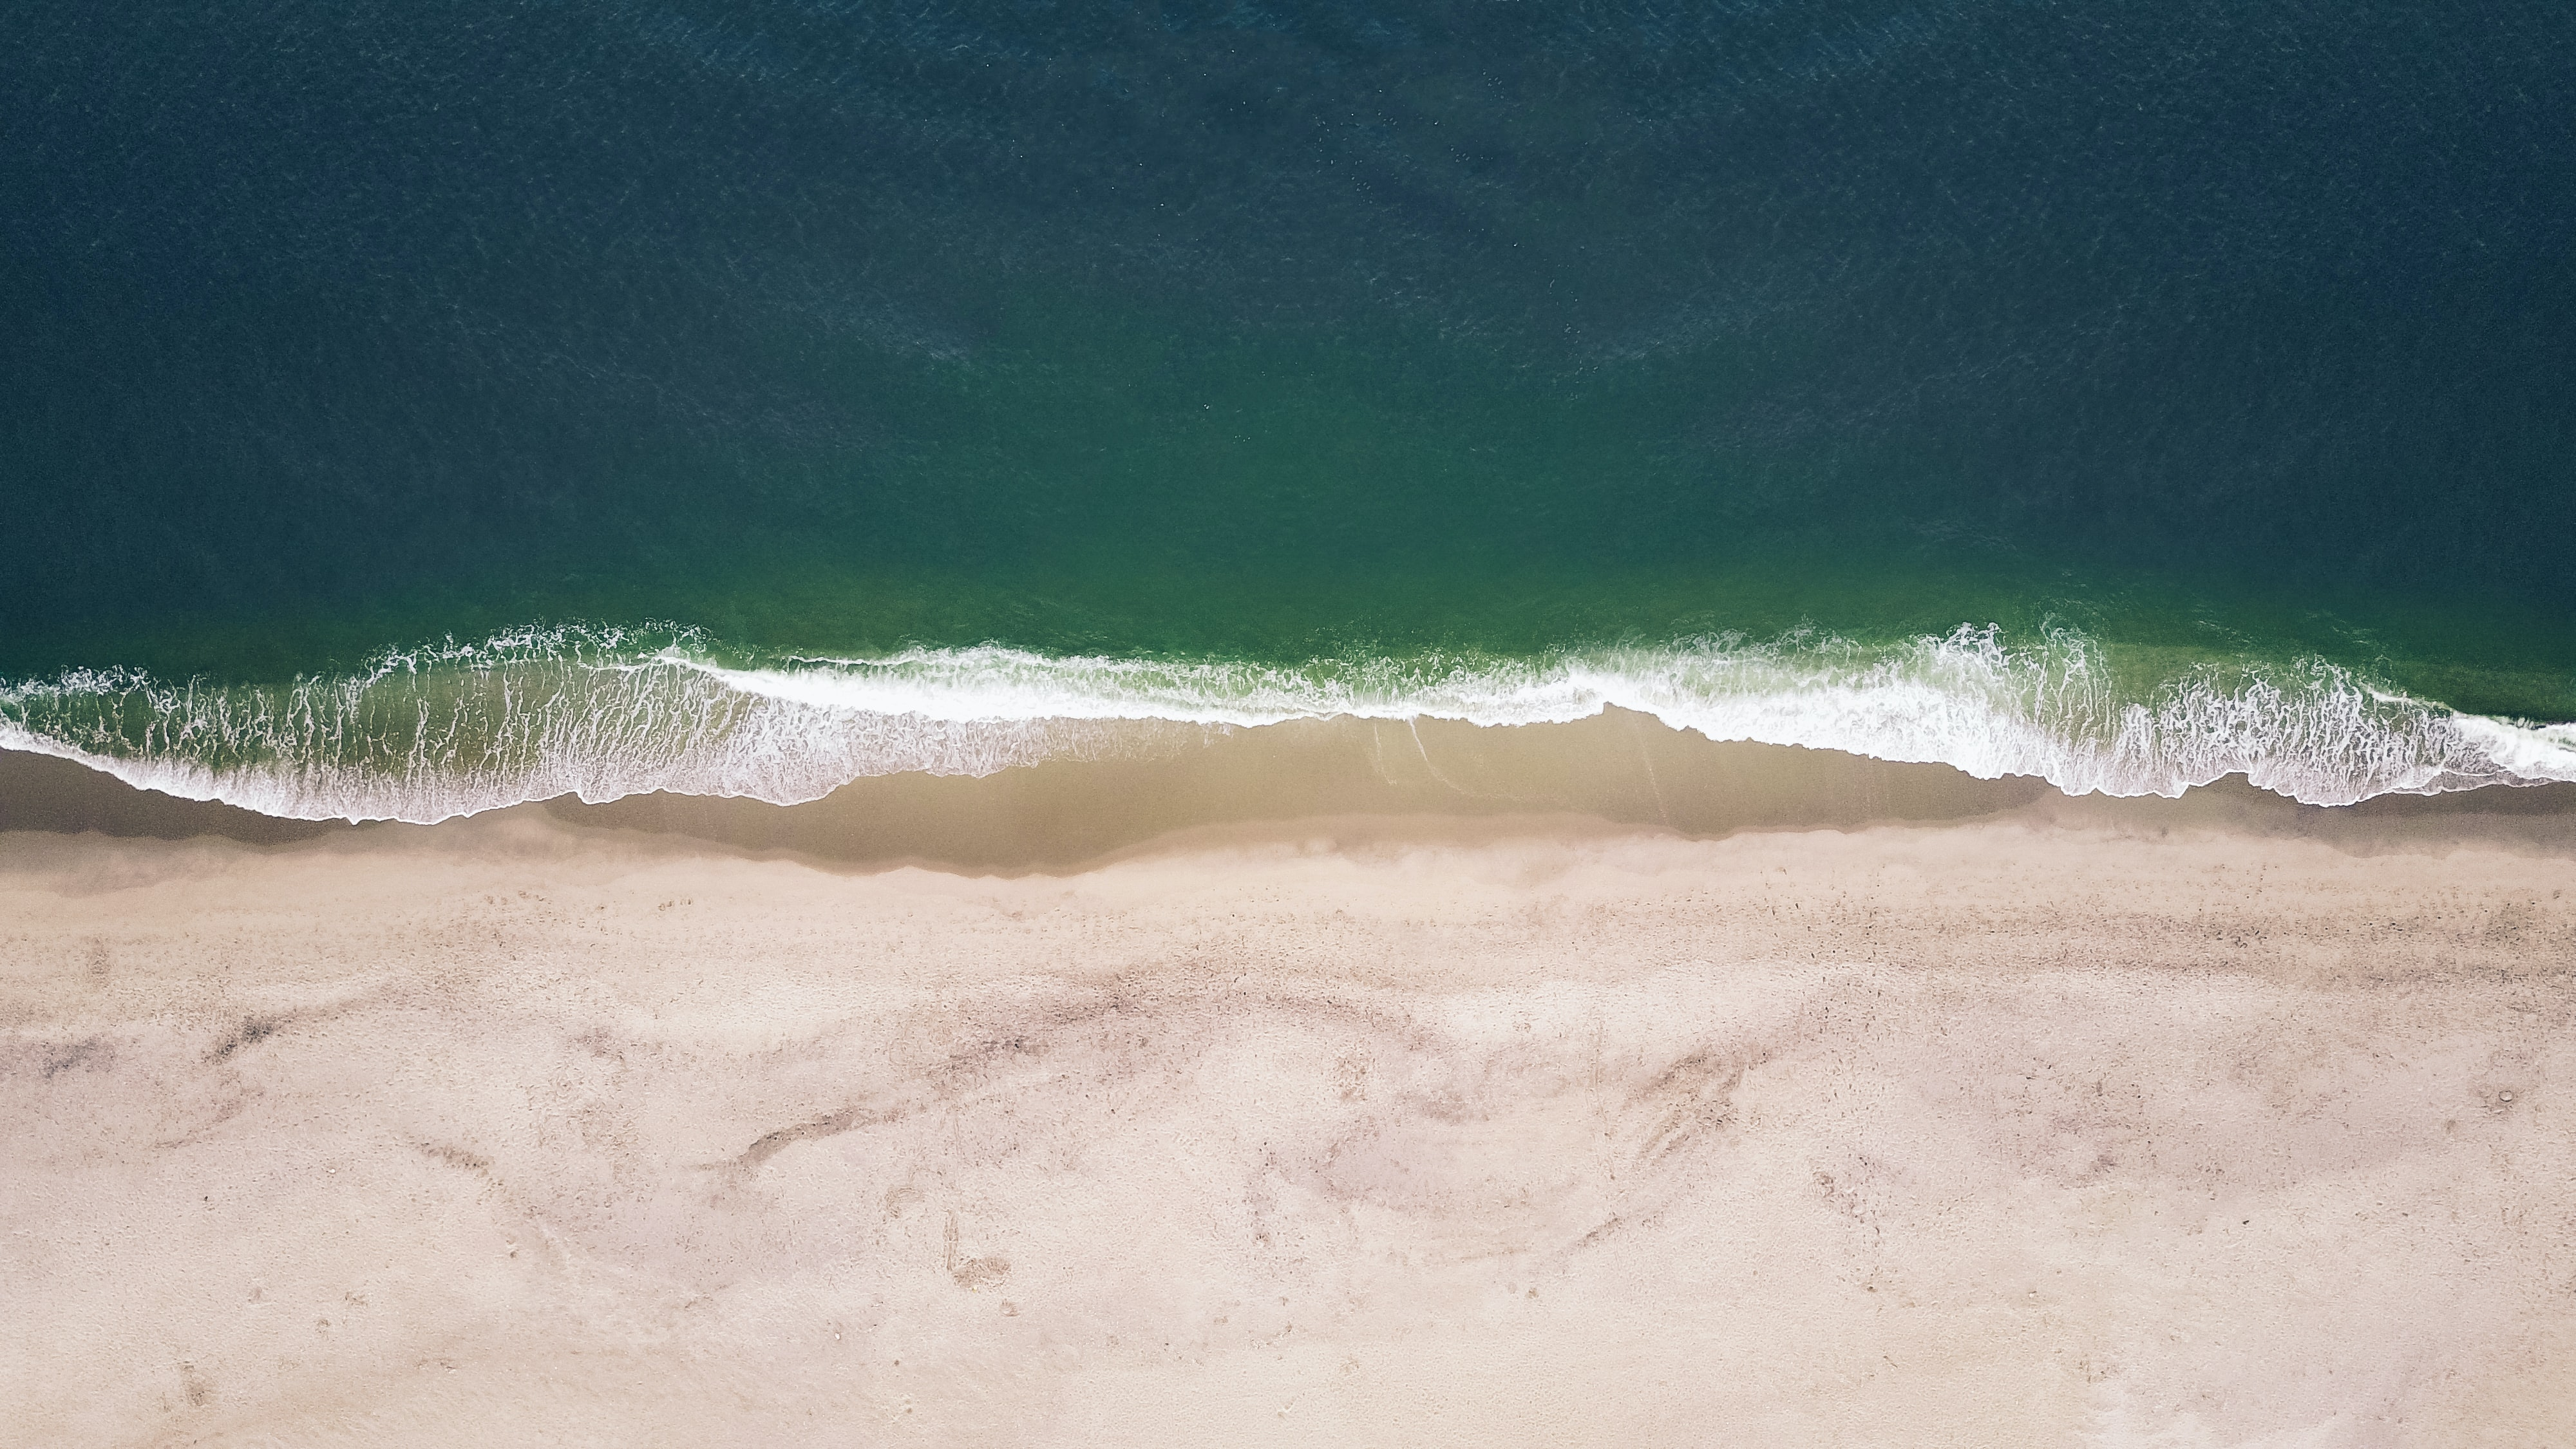 An aerial view of waves crashing on an empty beach